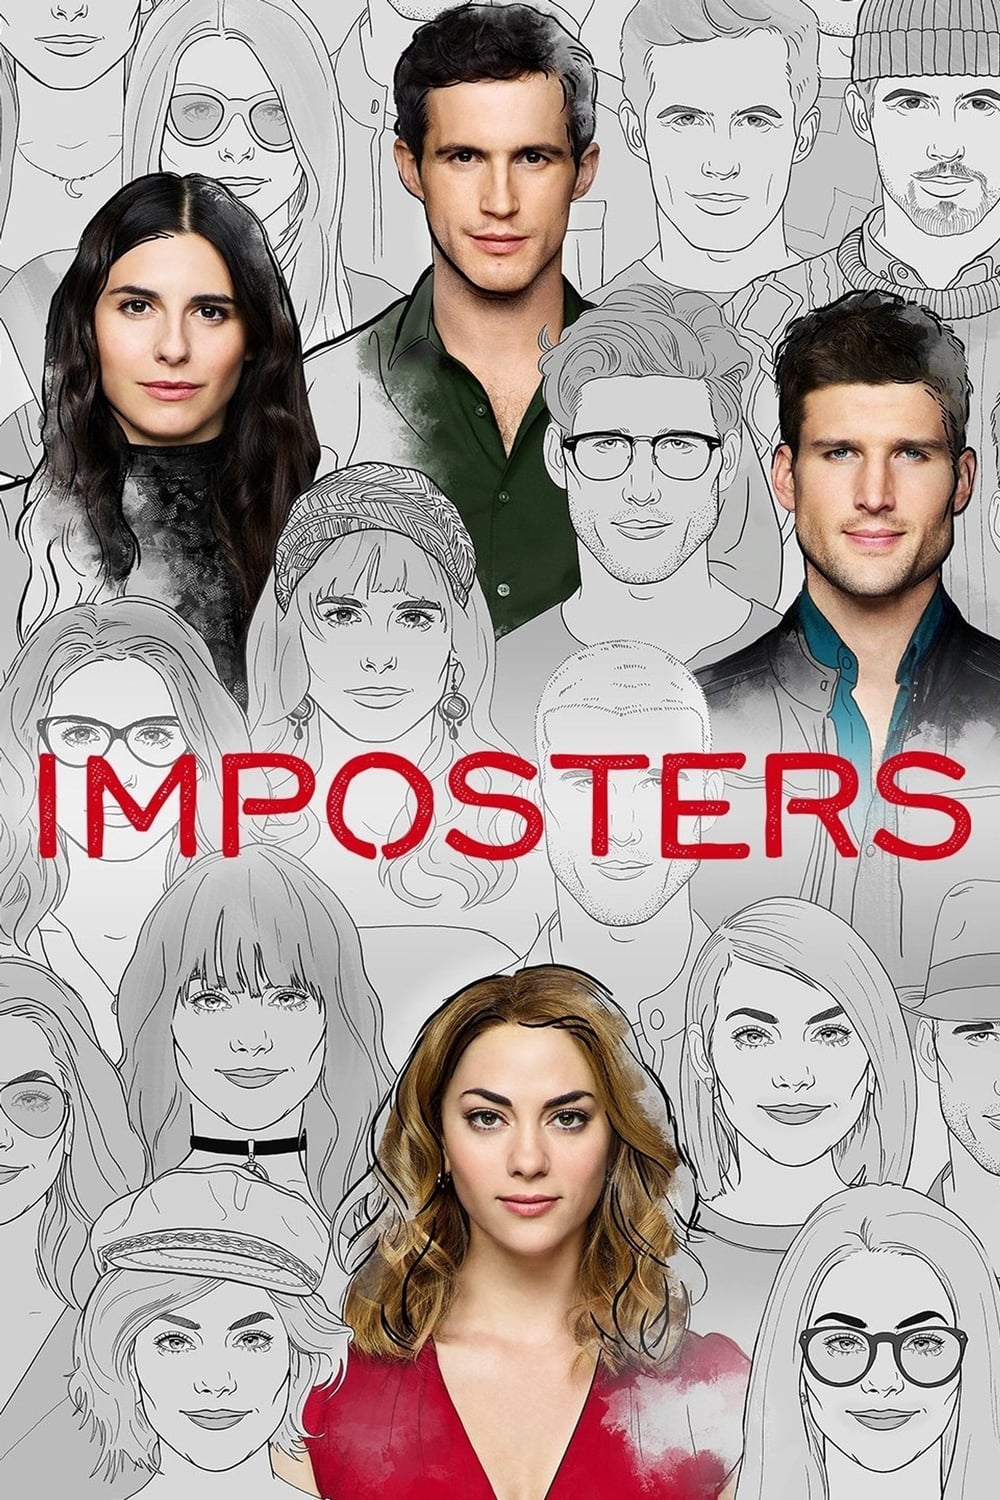 Imposters' />